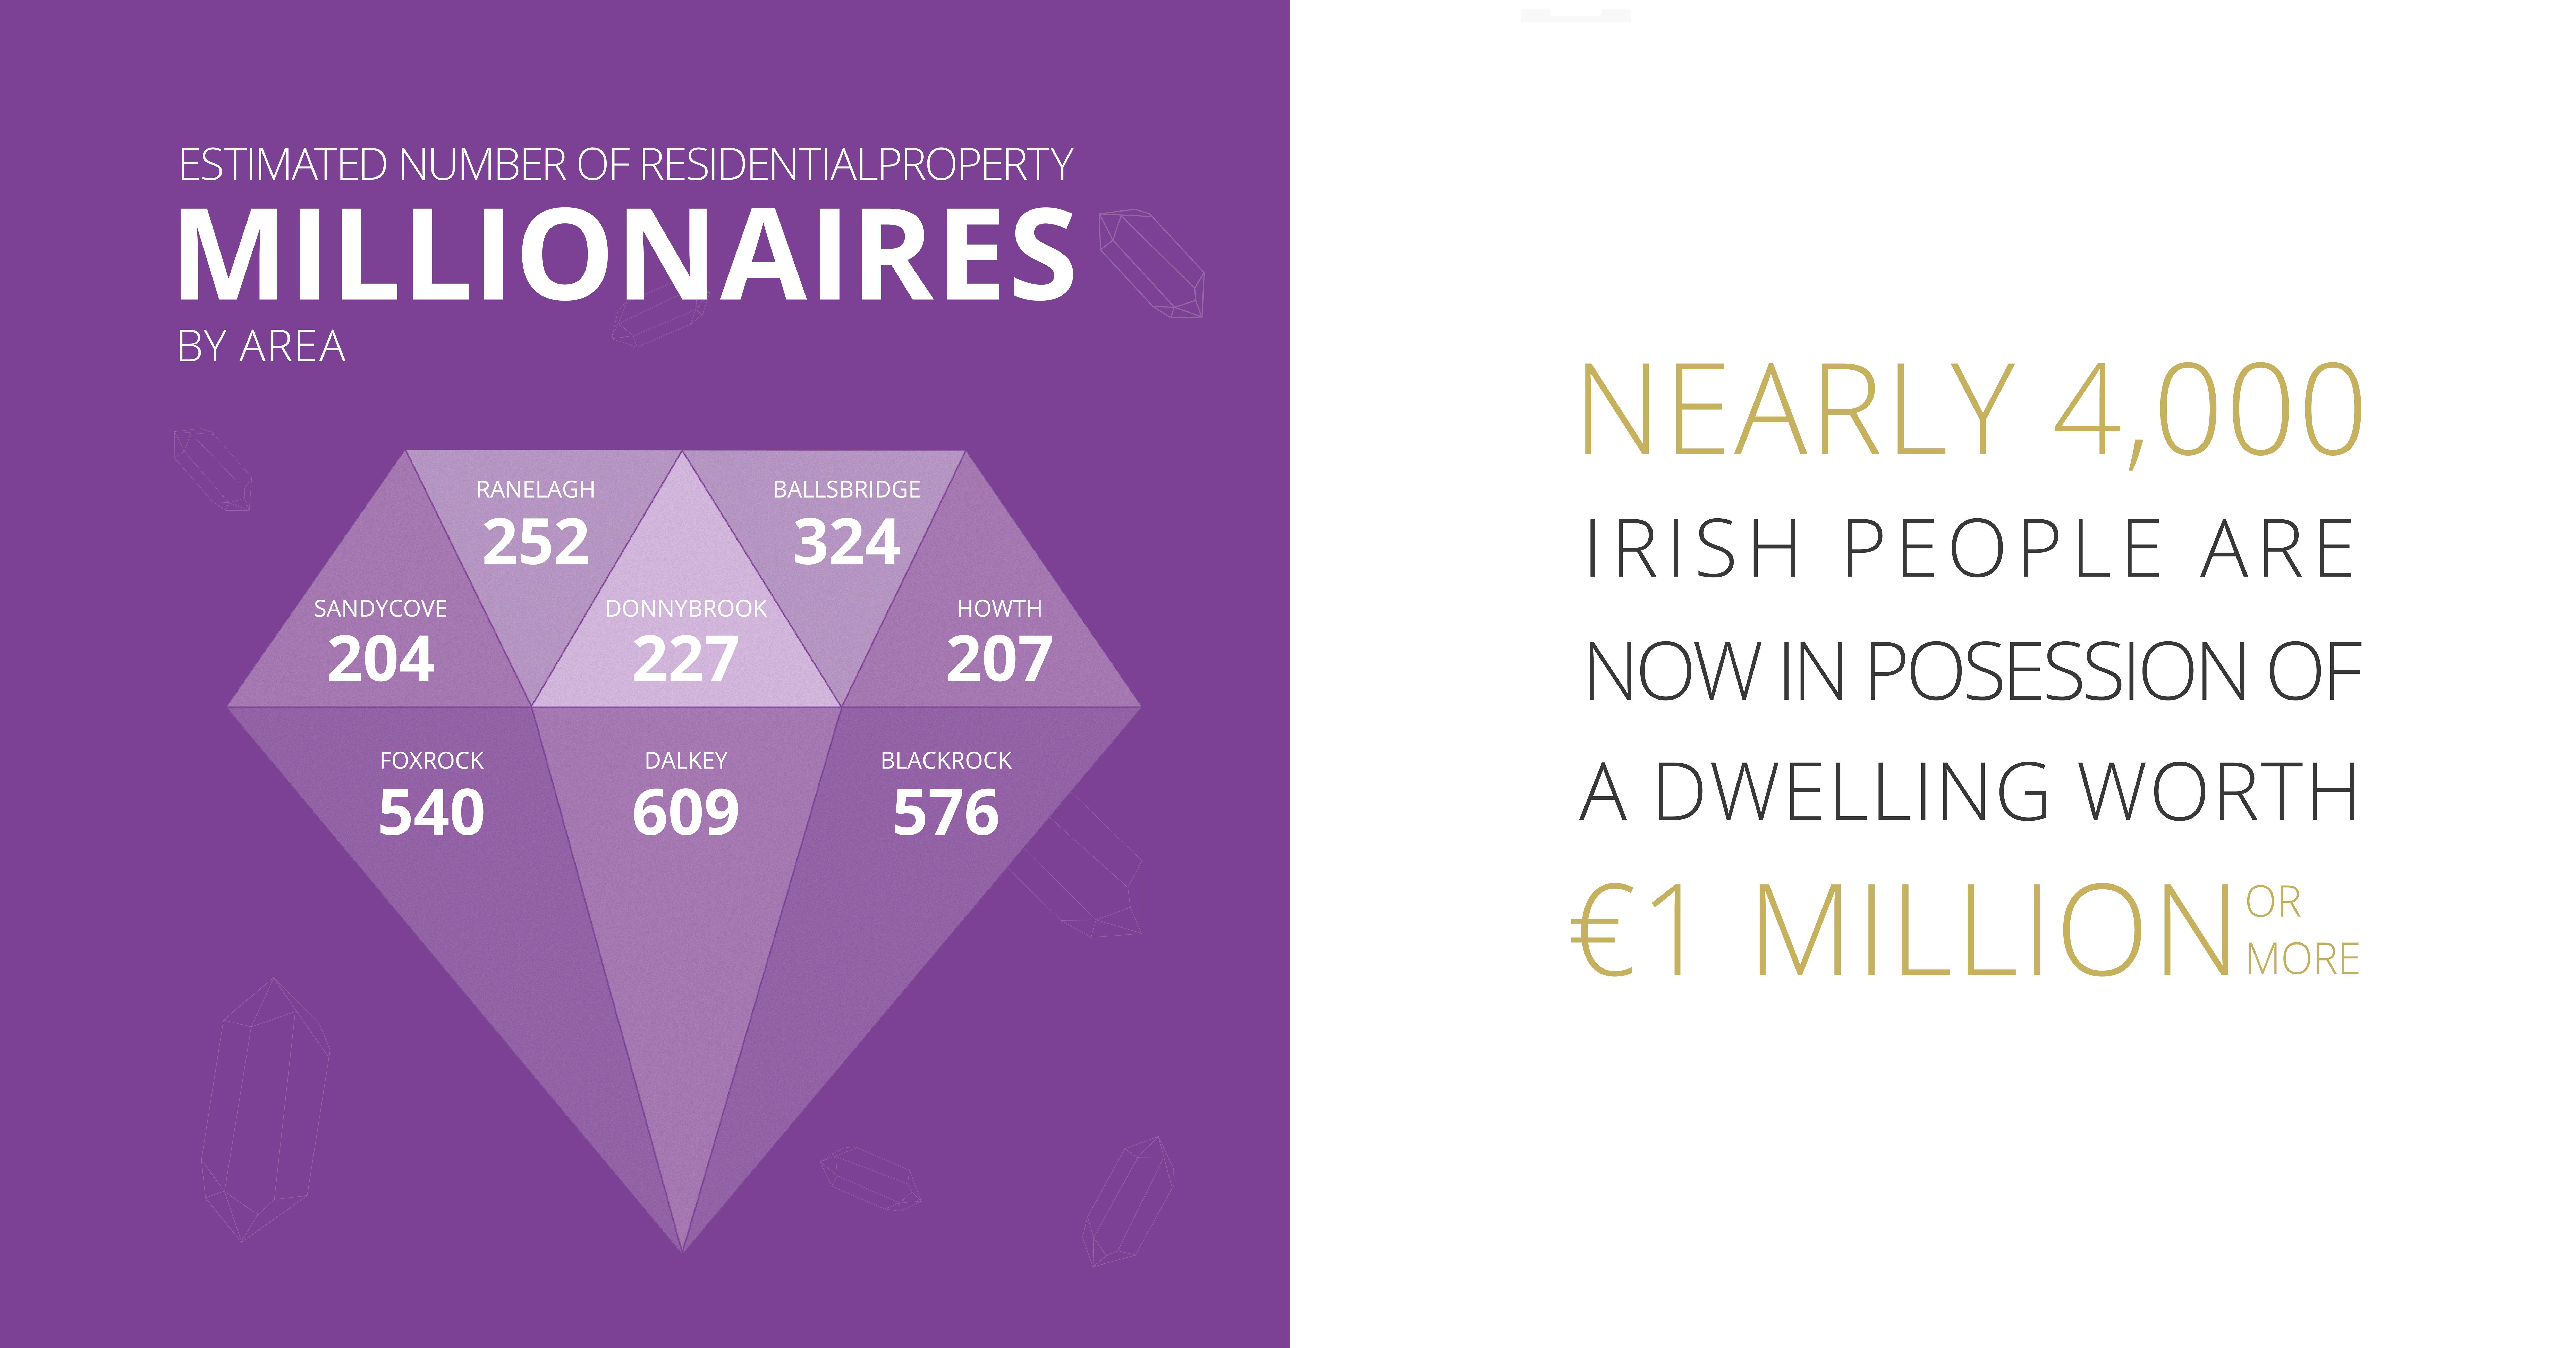 Estimated number of residential property millionaires by area